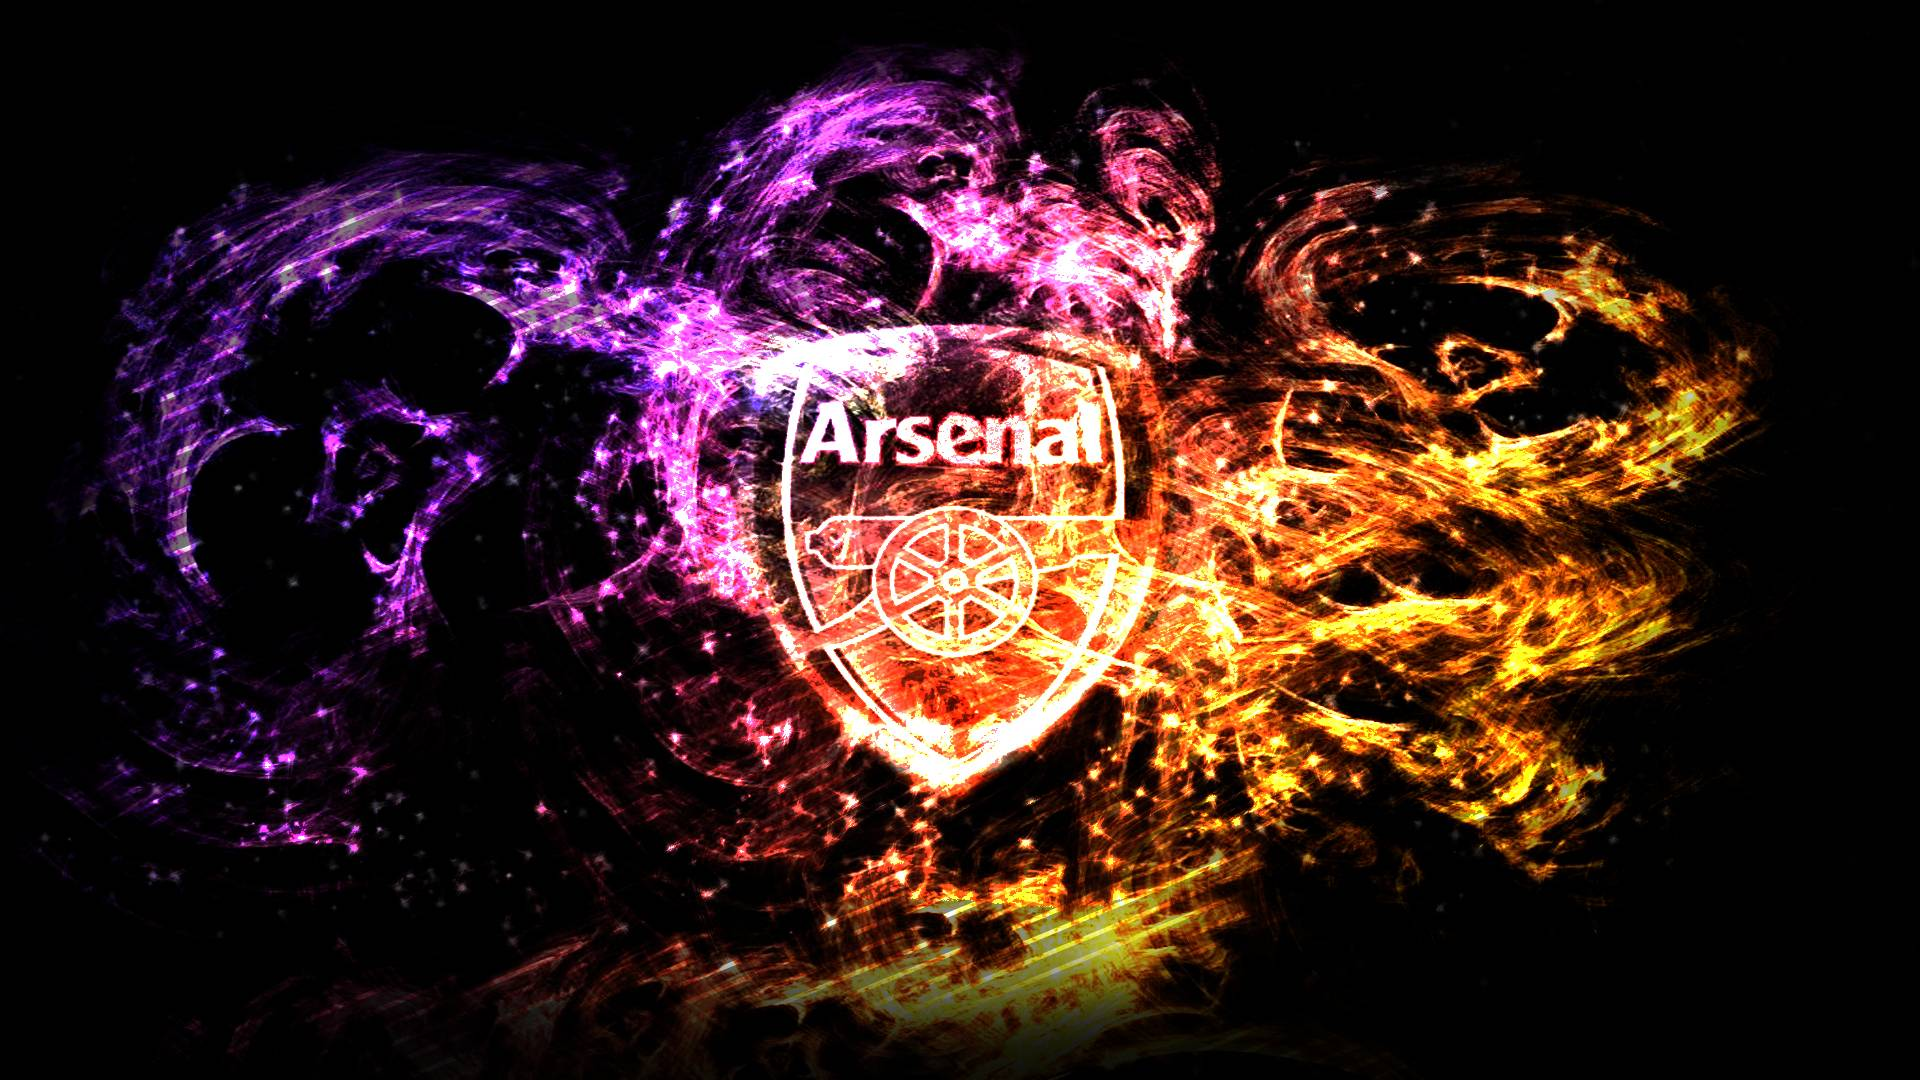 Asenal HD Wallpapers | Download Arsenal Pictures | Cool Wallpapers